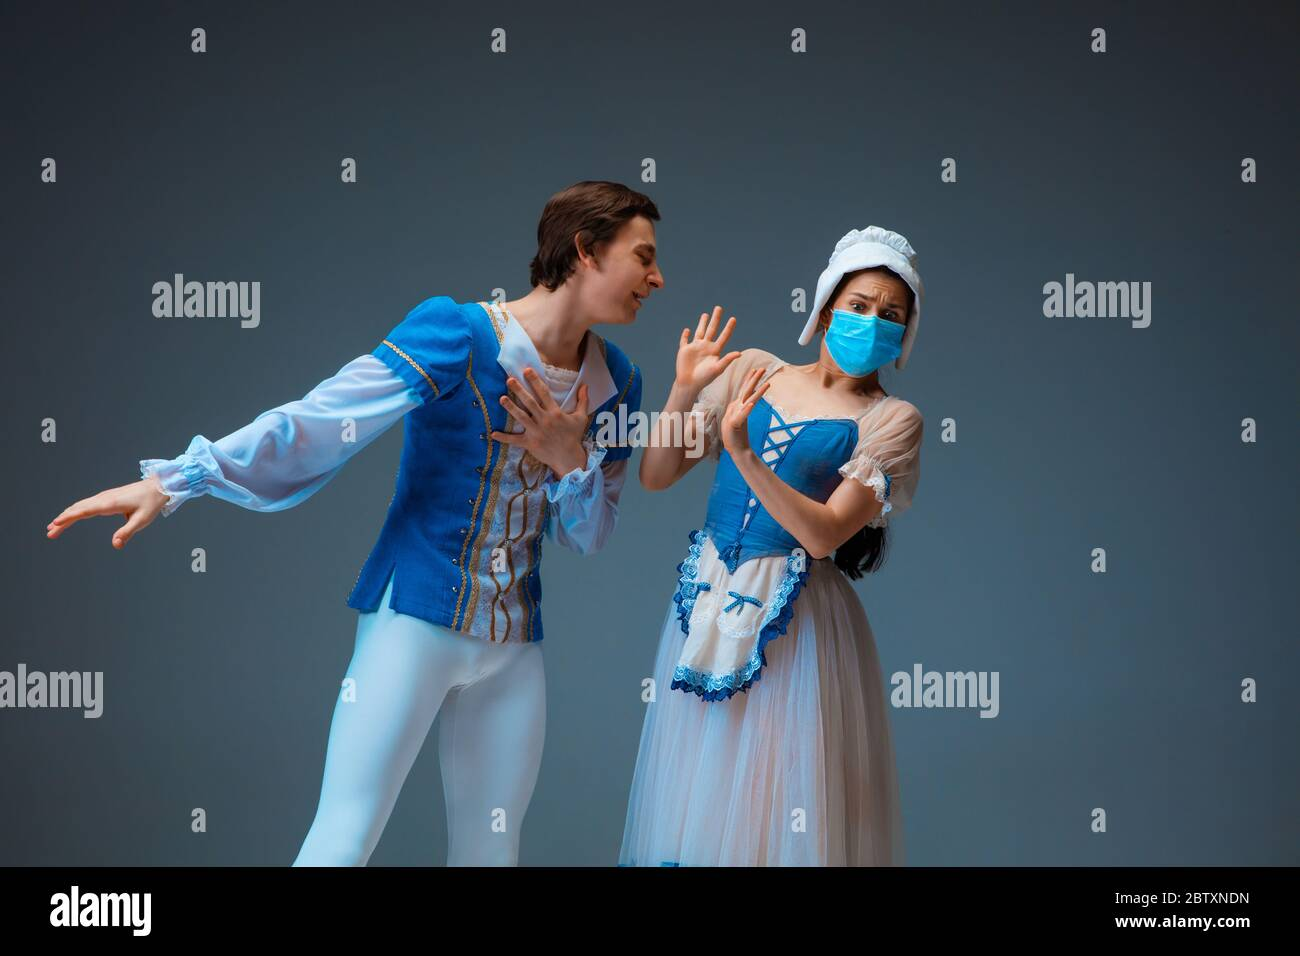 Modern Cinderella Avoiding Kissing With Prince Without Protective Face Mask Young And Graceful Ballet Dancers During Show On Studio Background Art Motion Flexibility Inspiration Concept Stock Photo Alamy